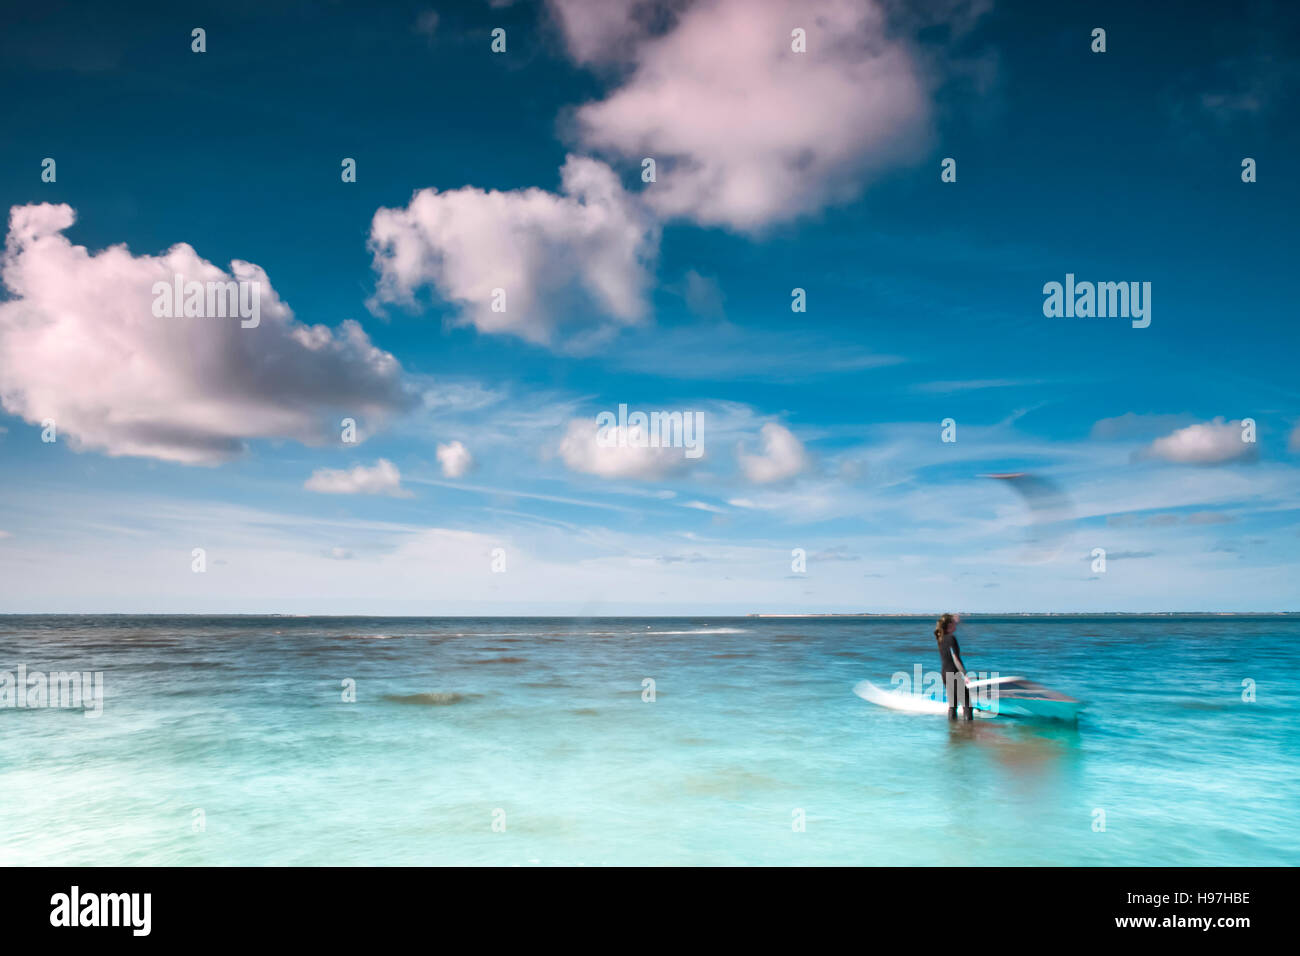 Wind surfer on his board on a calm ocean at the North Sea on a sunny blue sky day with clouds in a marine or nautical - Stock Image